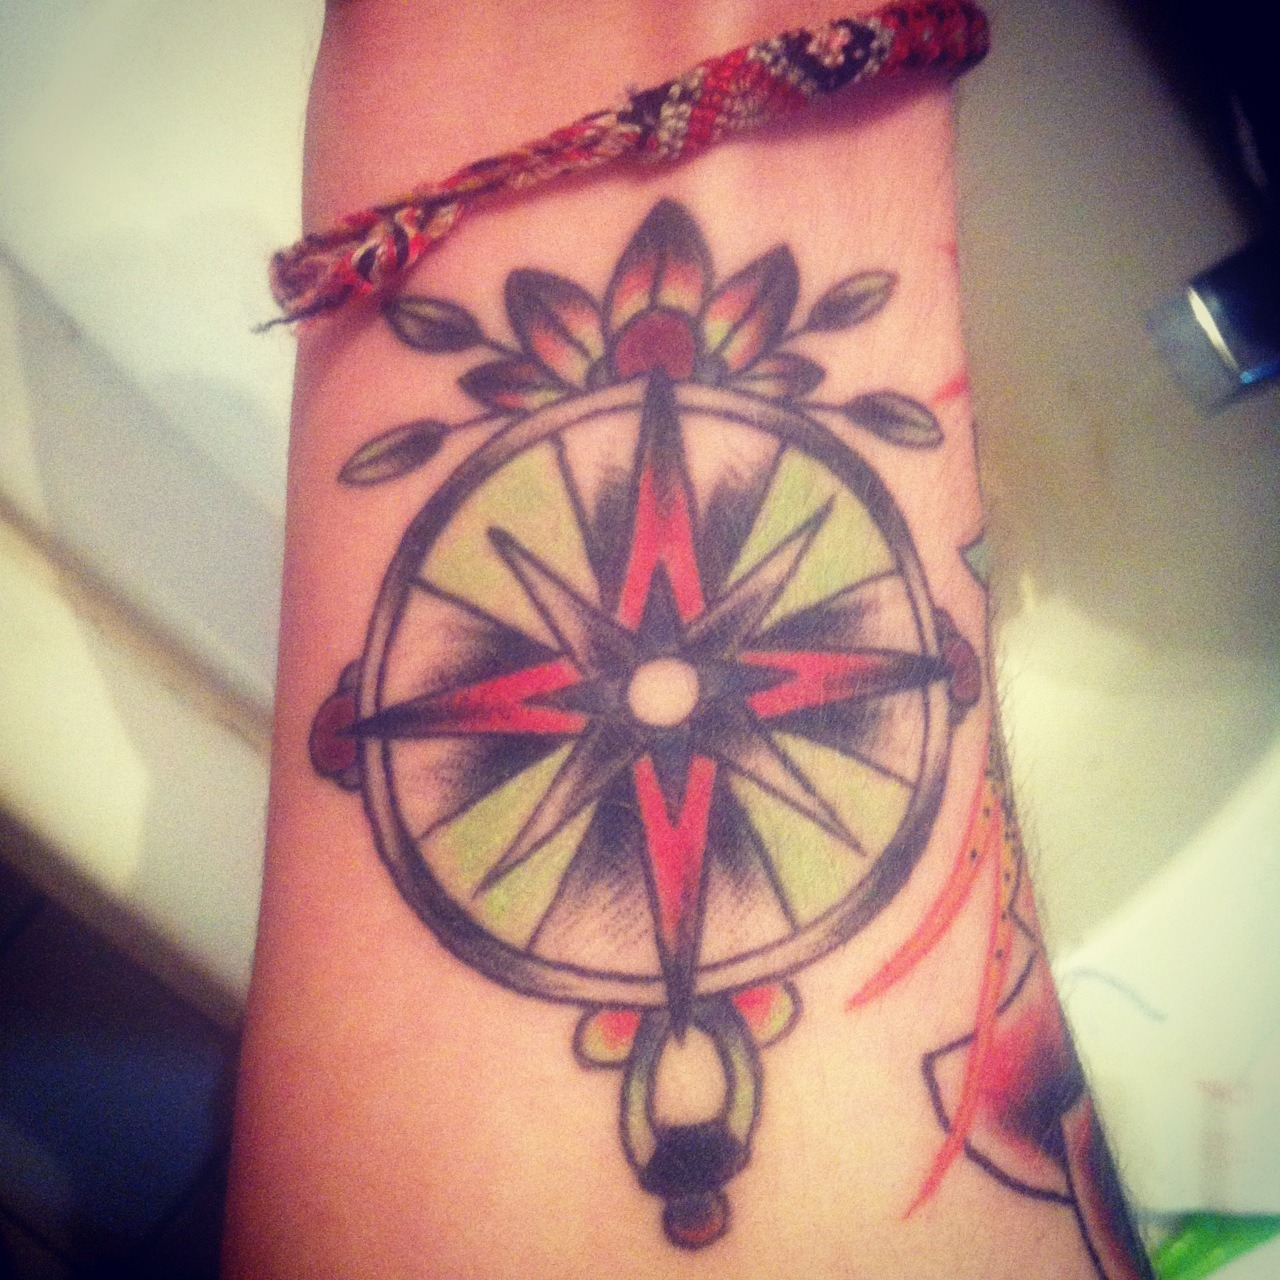 Compass done by Ash at Adrenaline Toronto Canada in april 2012 paintedrabbit.tumblr.com